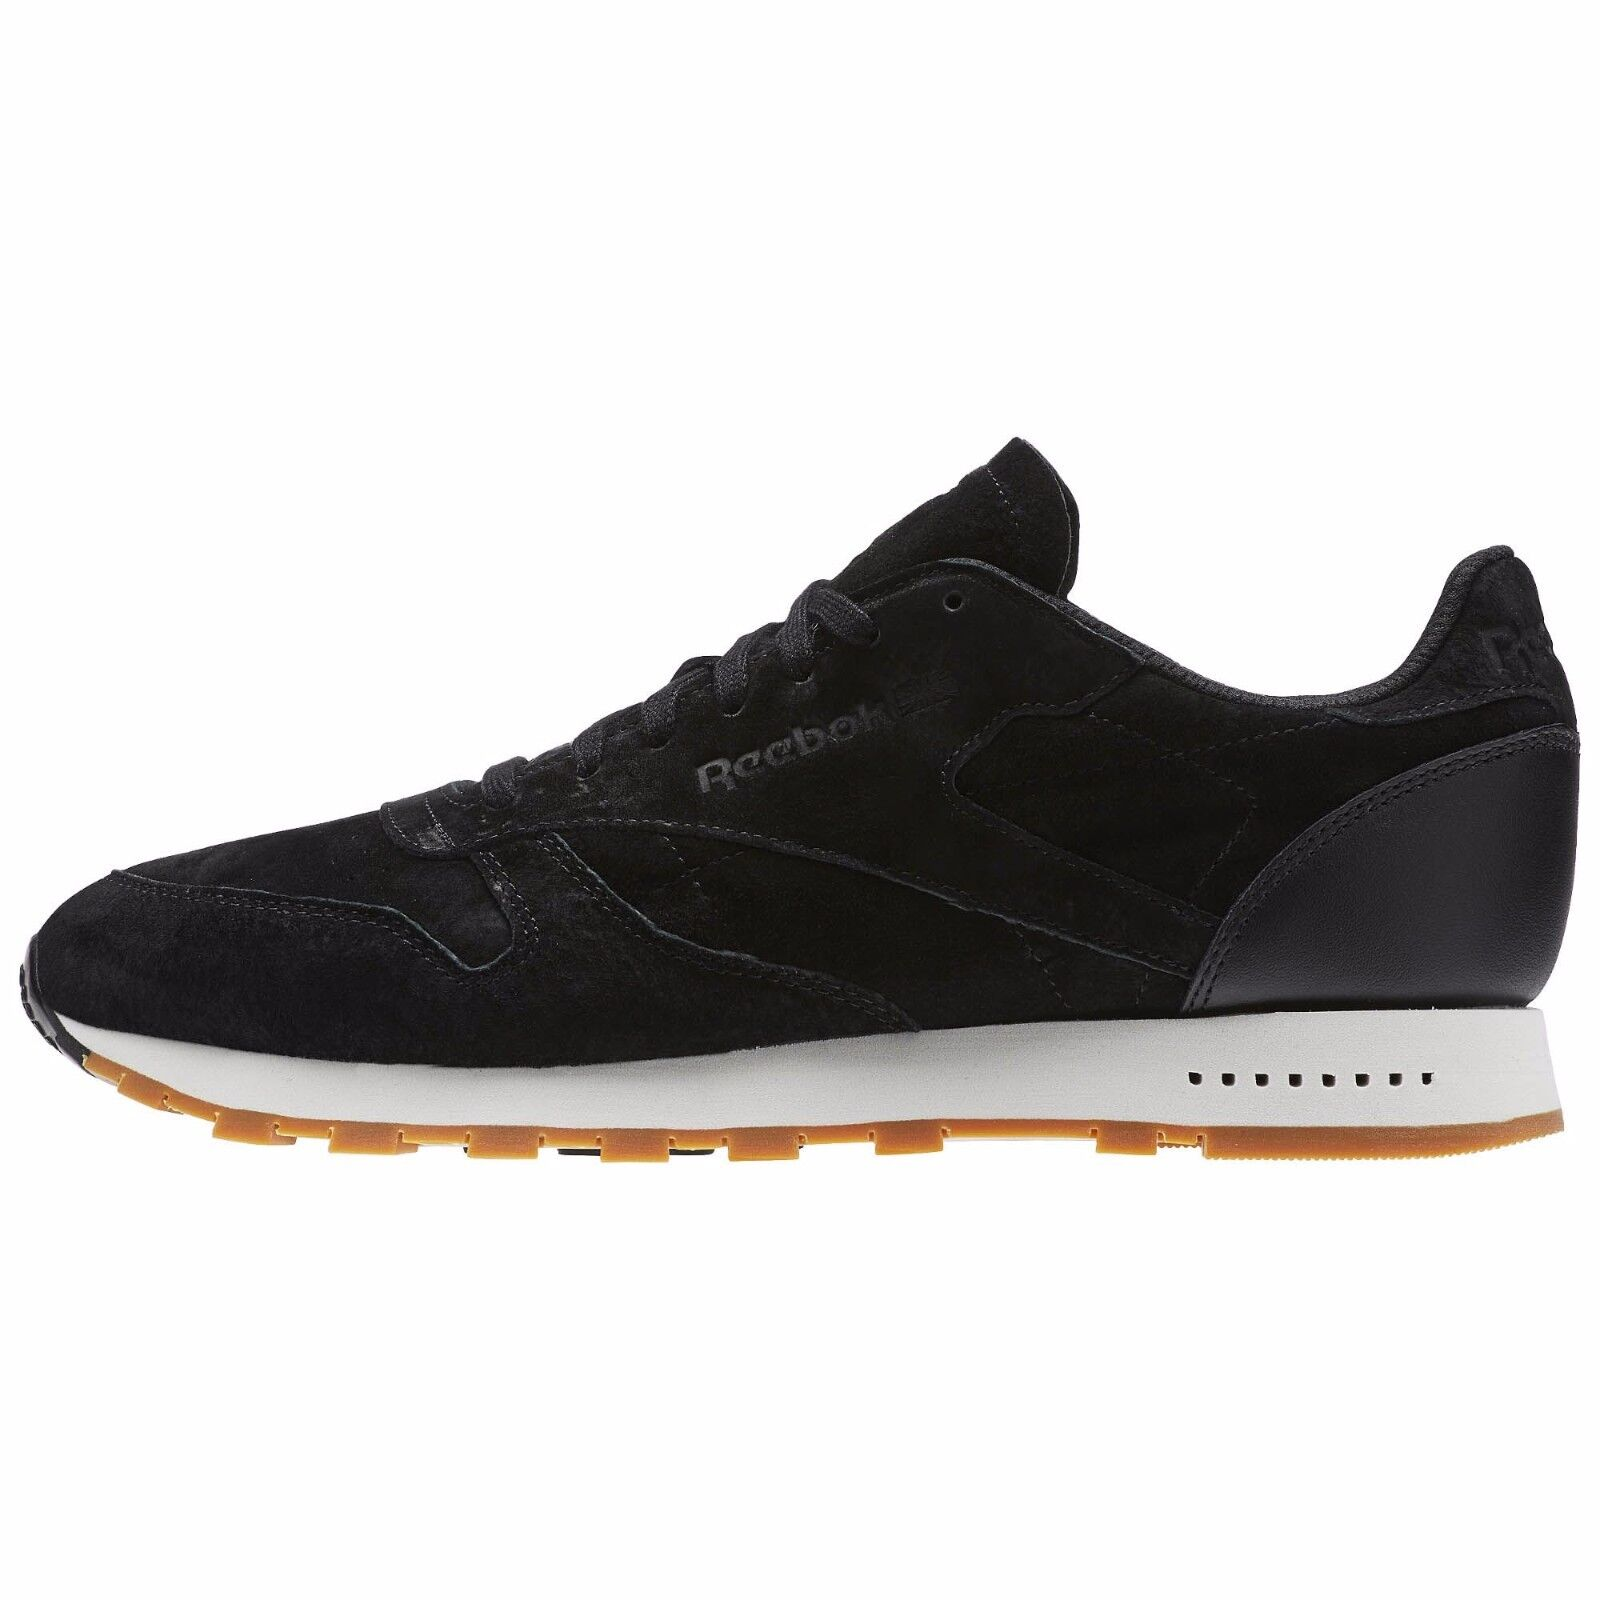 Reebok hommes CLASSIC LEATHER SUEDE GUM SOLE SG Chaussures noir BS7892 b